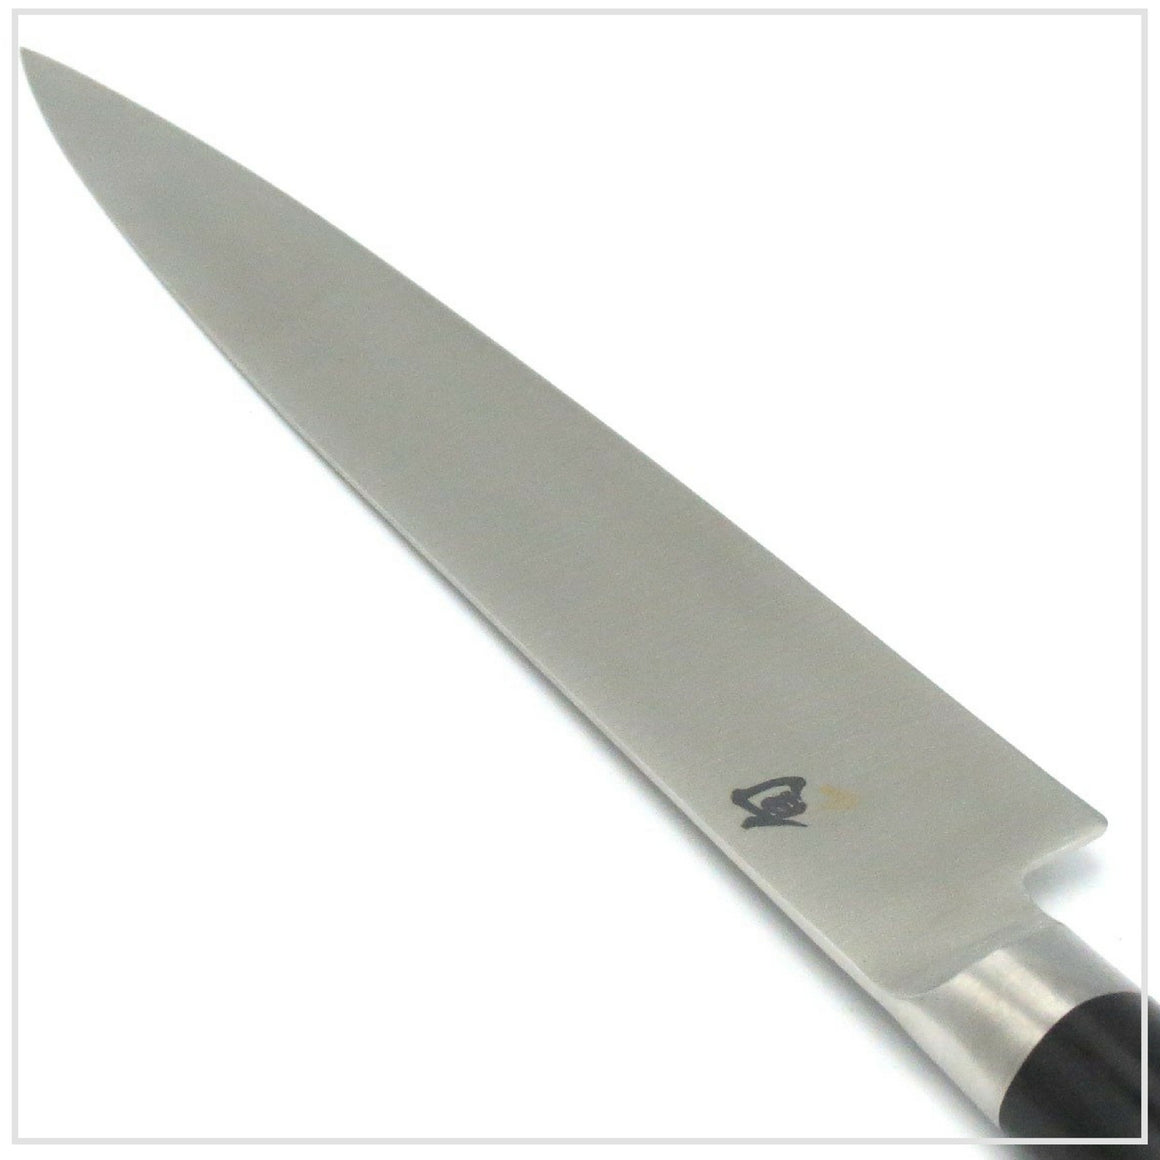 KAI SHUN Flexible Filleting Knife